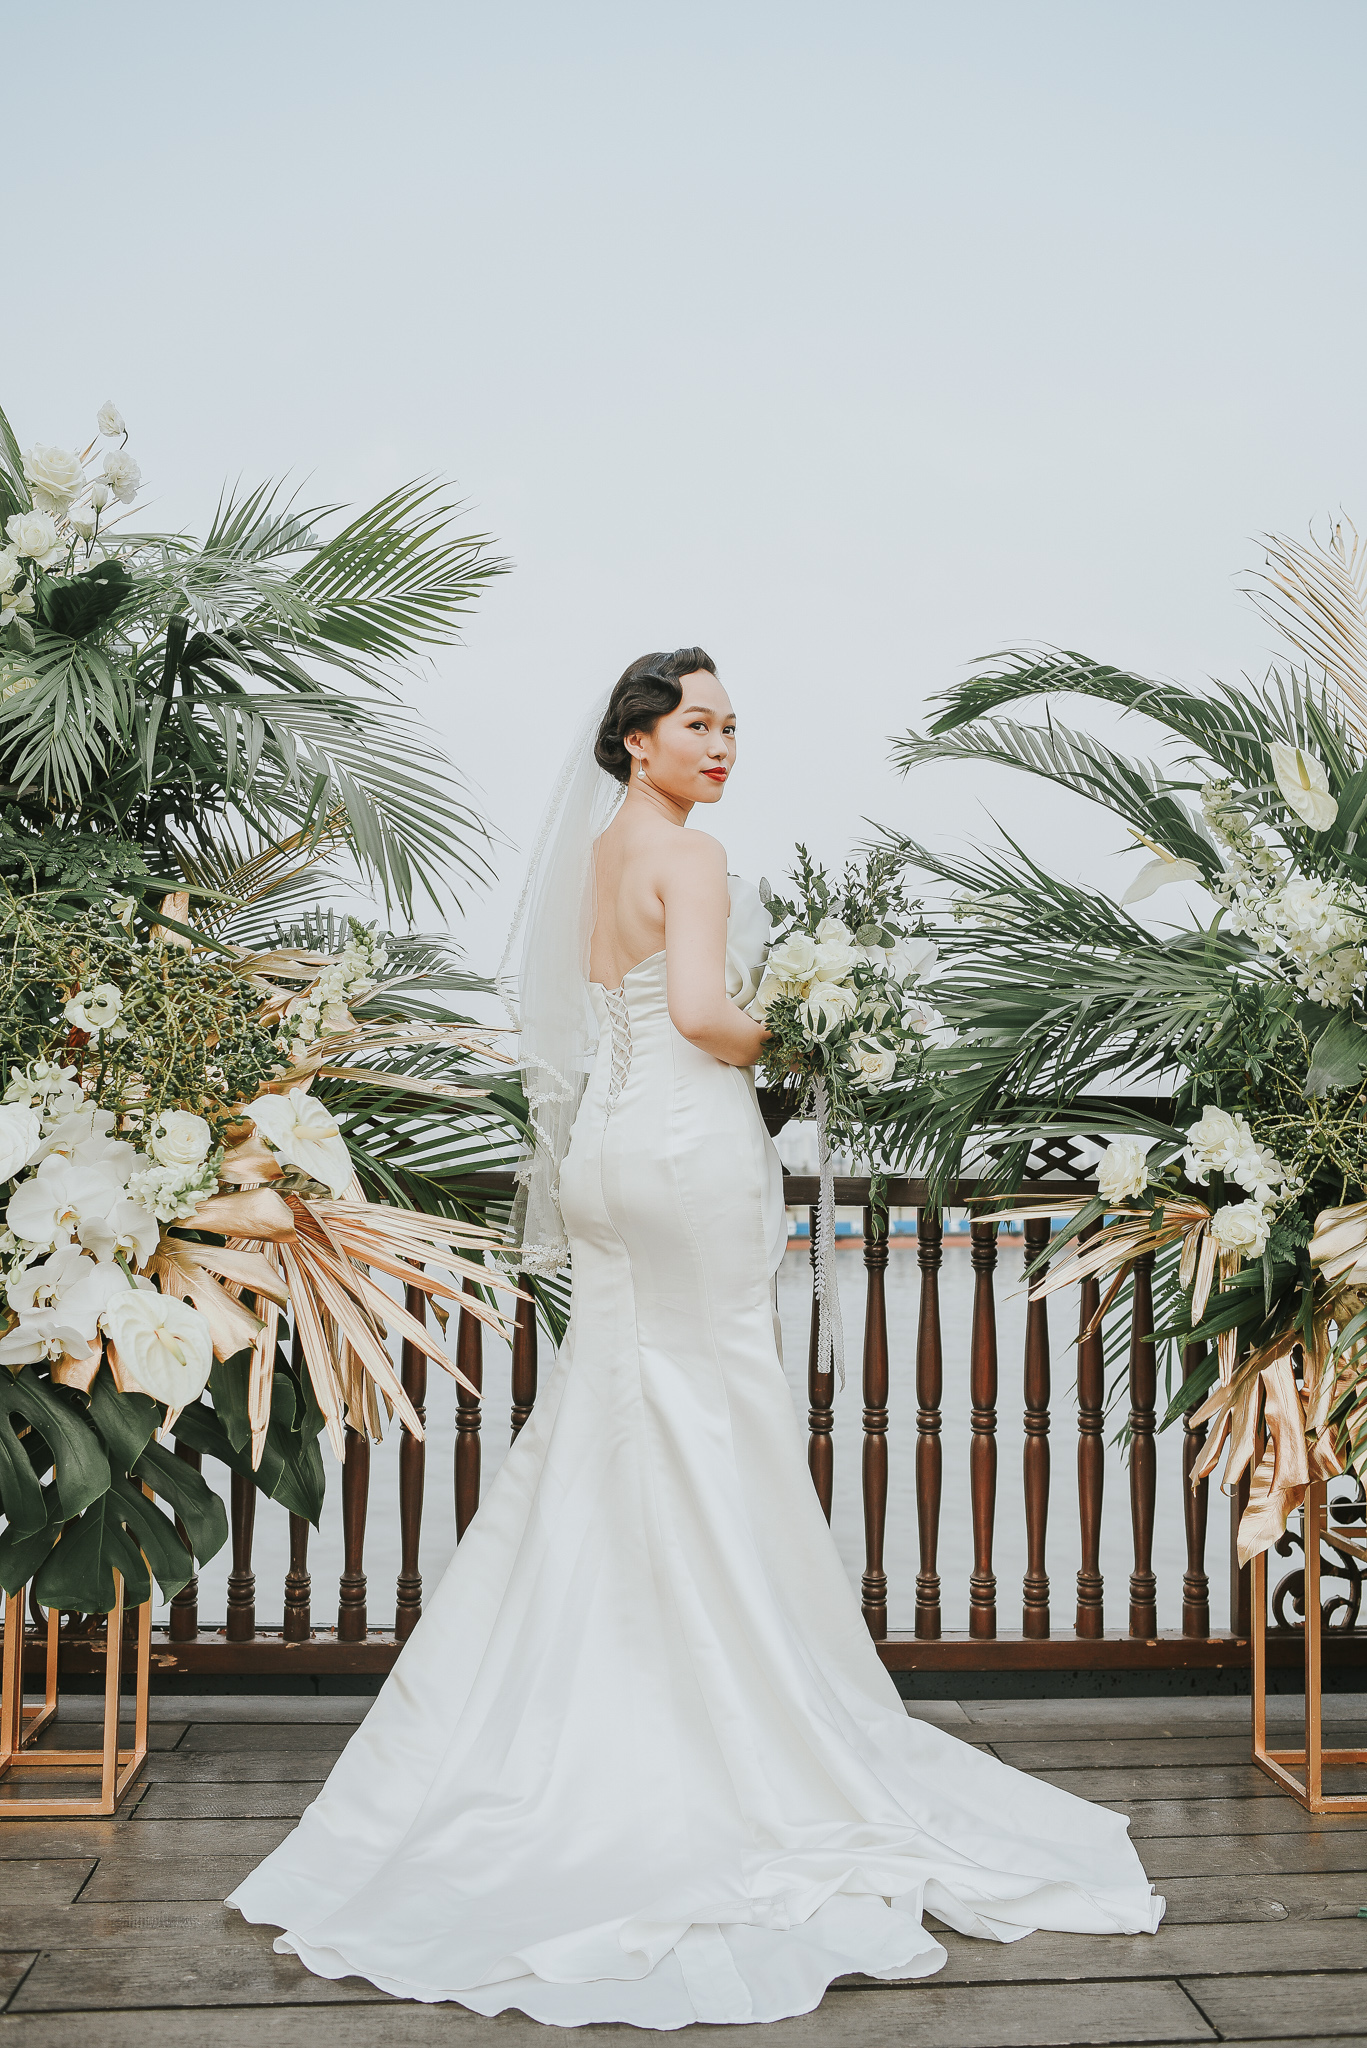 - Clients: Le Phi & Thomas Andre Planner: Giang Bui, in collaboration with Xuan Hoang from Meraki Wedding Planner. Concept: The F LabCoordination: The F Lab & Meraki Wedding Planner Decoration: Home Garden Venue: Bonsai Cruise Photo: Nguyen Thanh Luan Wedding dress: IDY Wedding MUA: Tran Quoc Thang